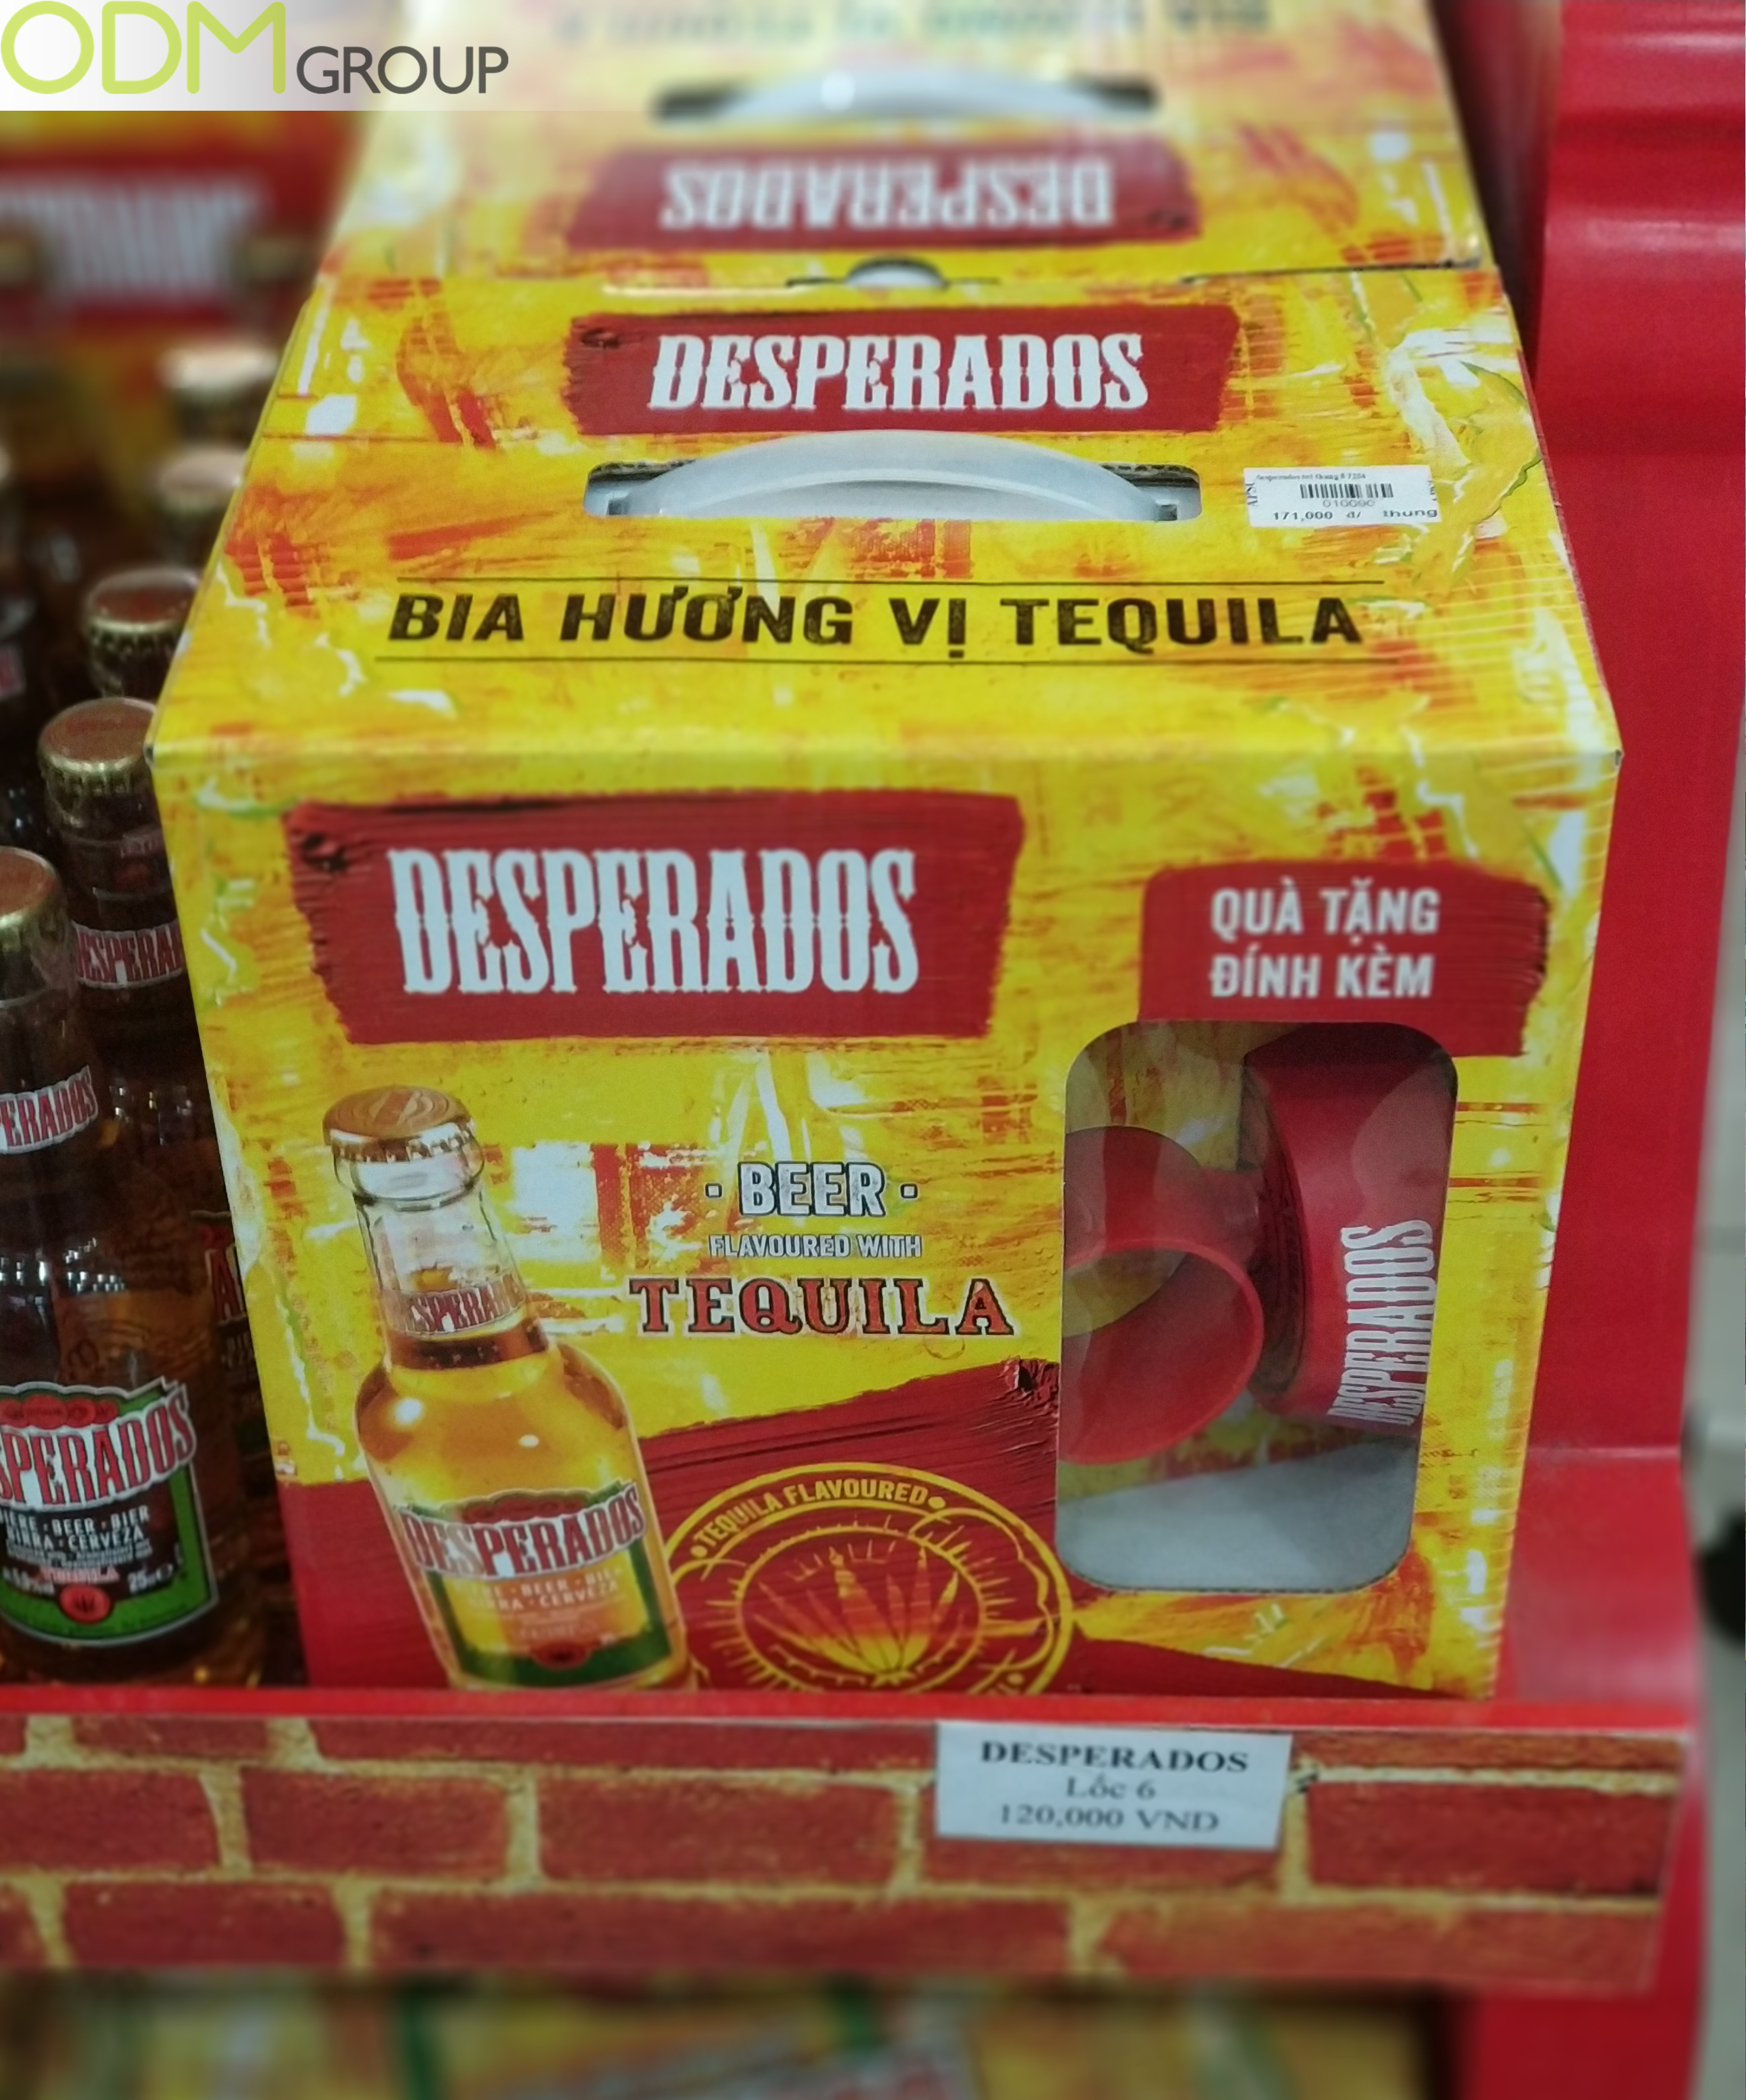 Cool Promotional Drinks Products- Desperados Spin the Bottle Giveaways